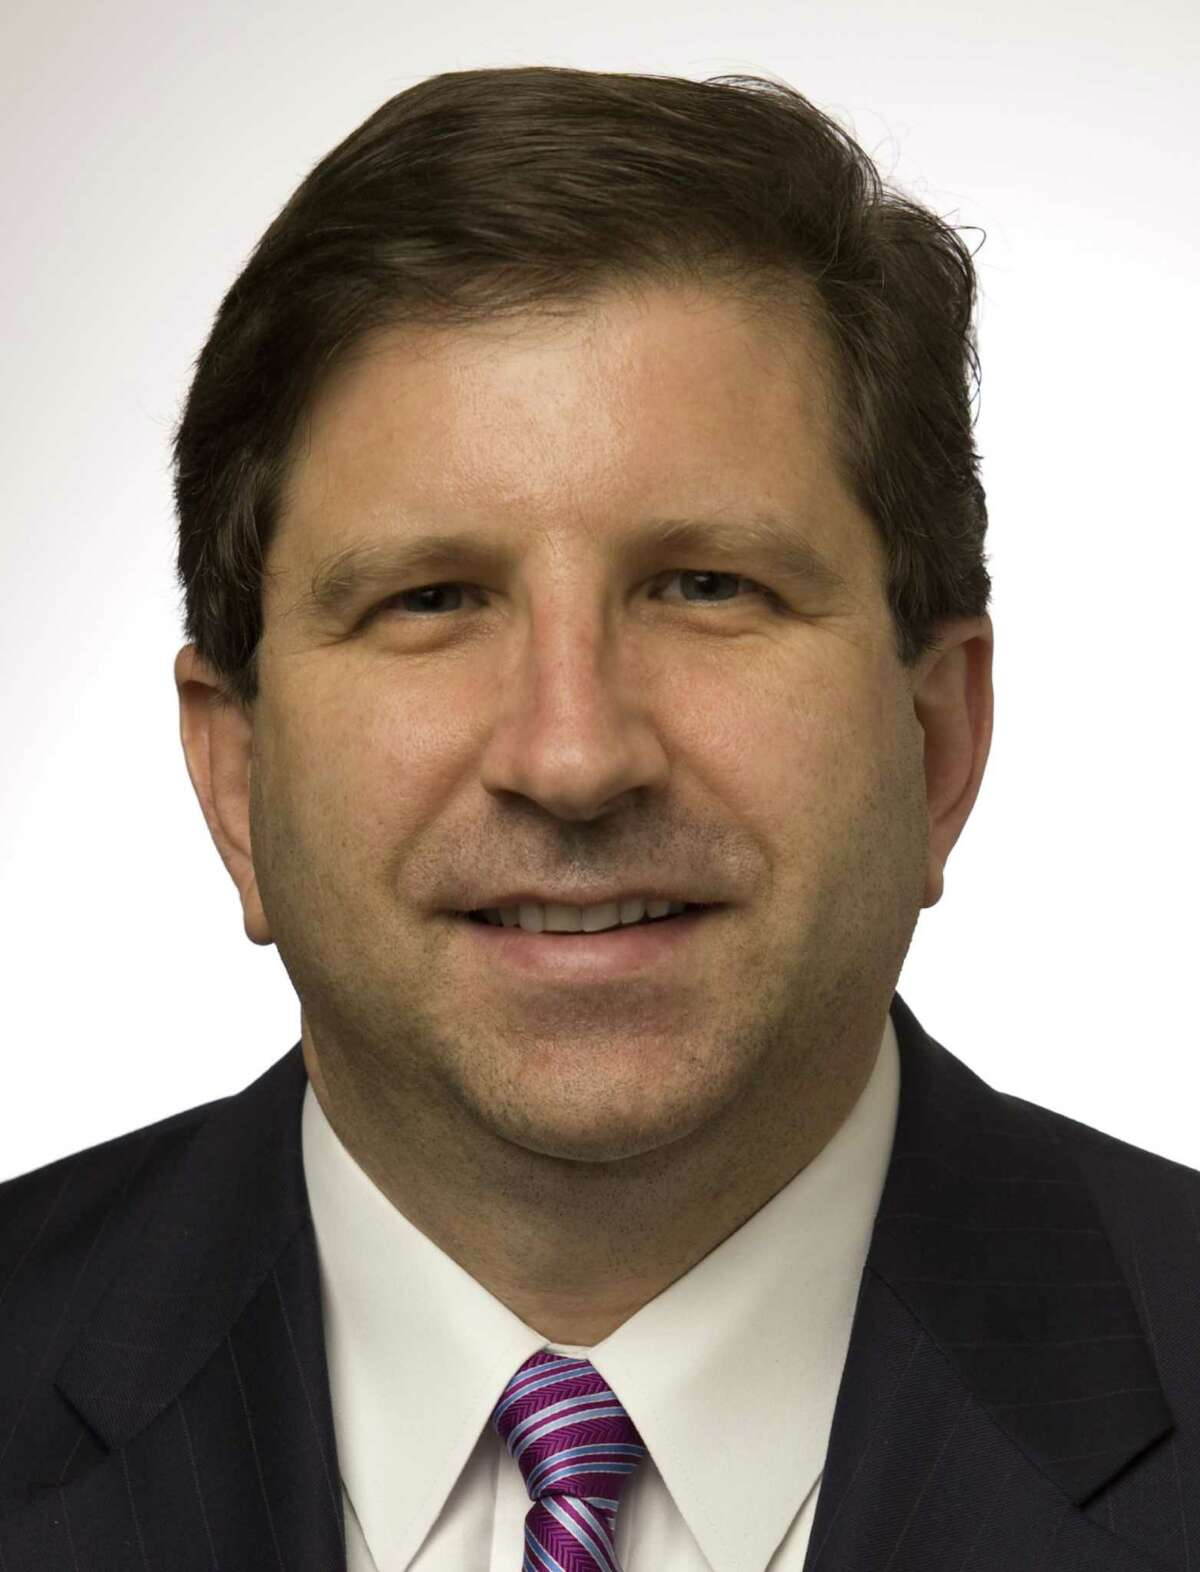 Jesse Gelsomini, an employment lawyer who specializes in employee benefits at Haynes and Boone in Houston.